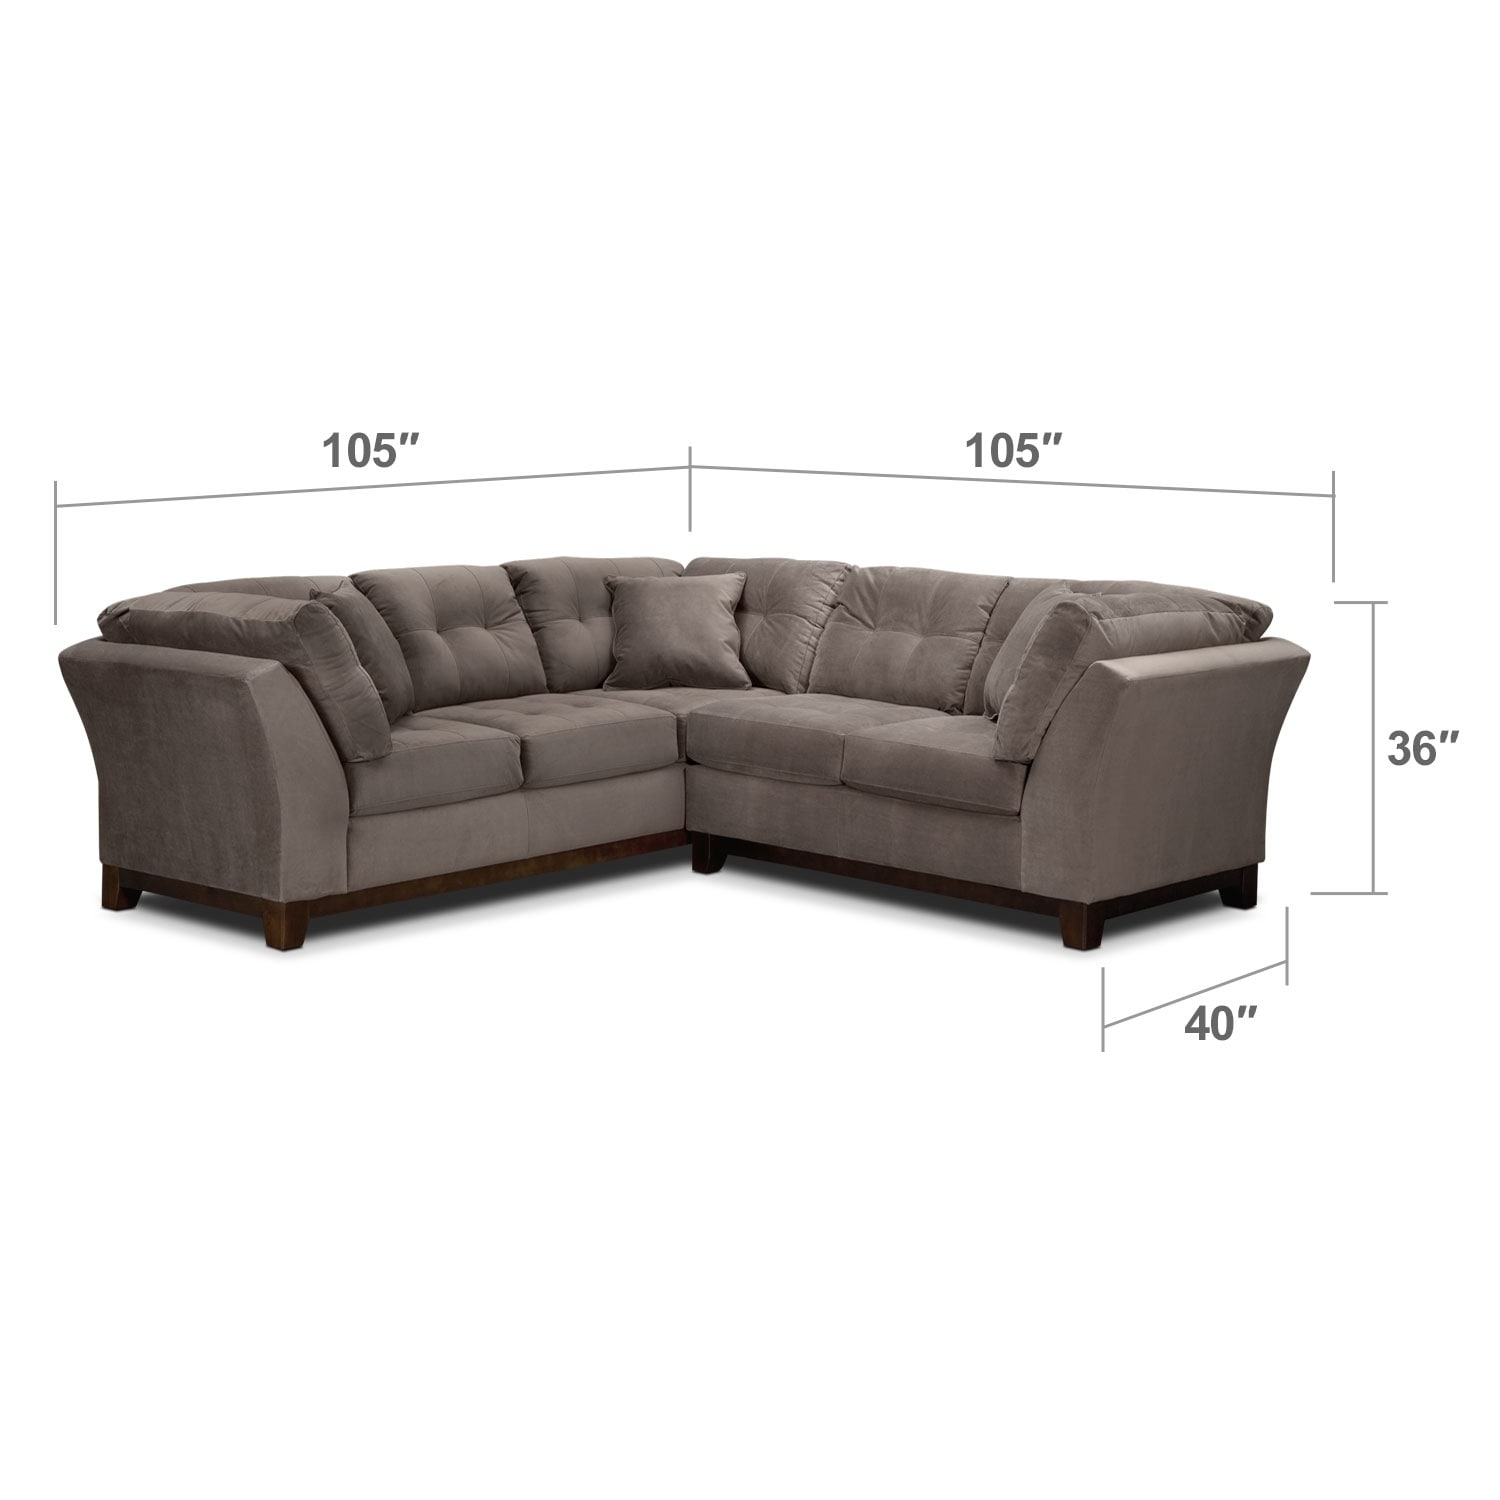 Living Room Furniture - Solace Gray II 2 Pc. Sectional (Alternate II Reverse)